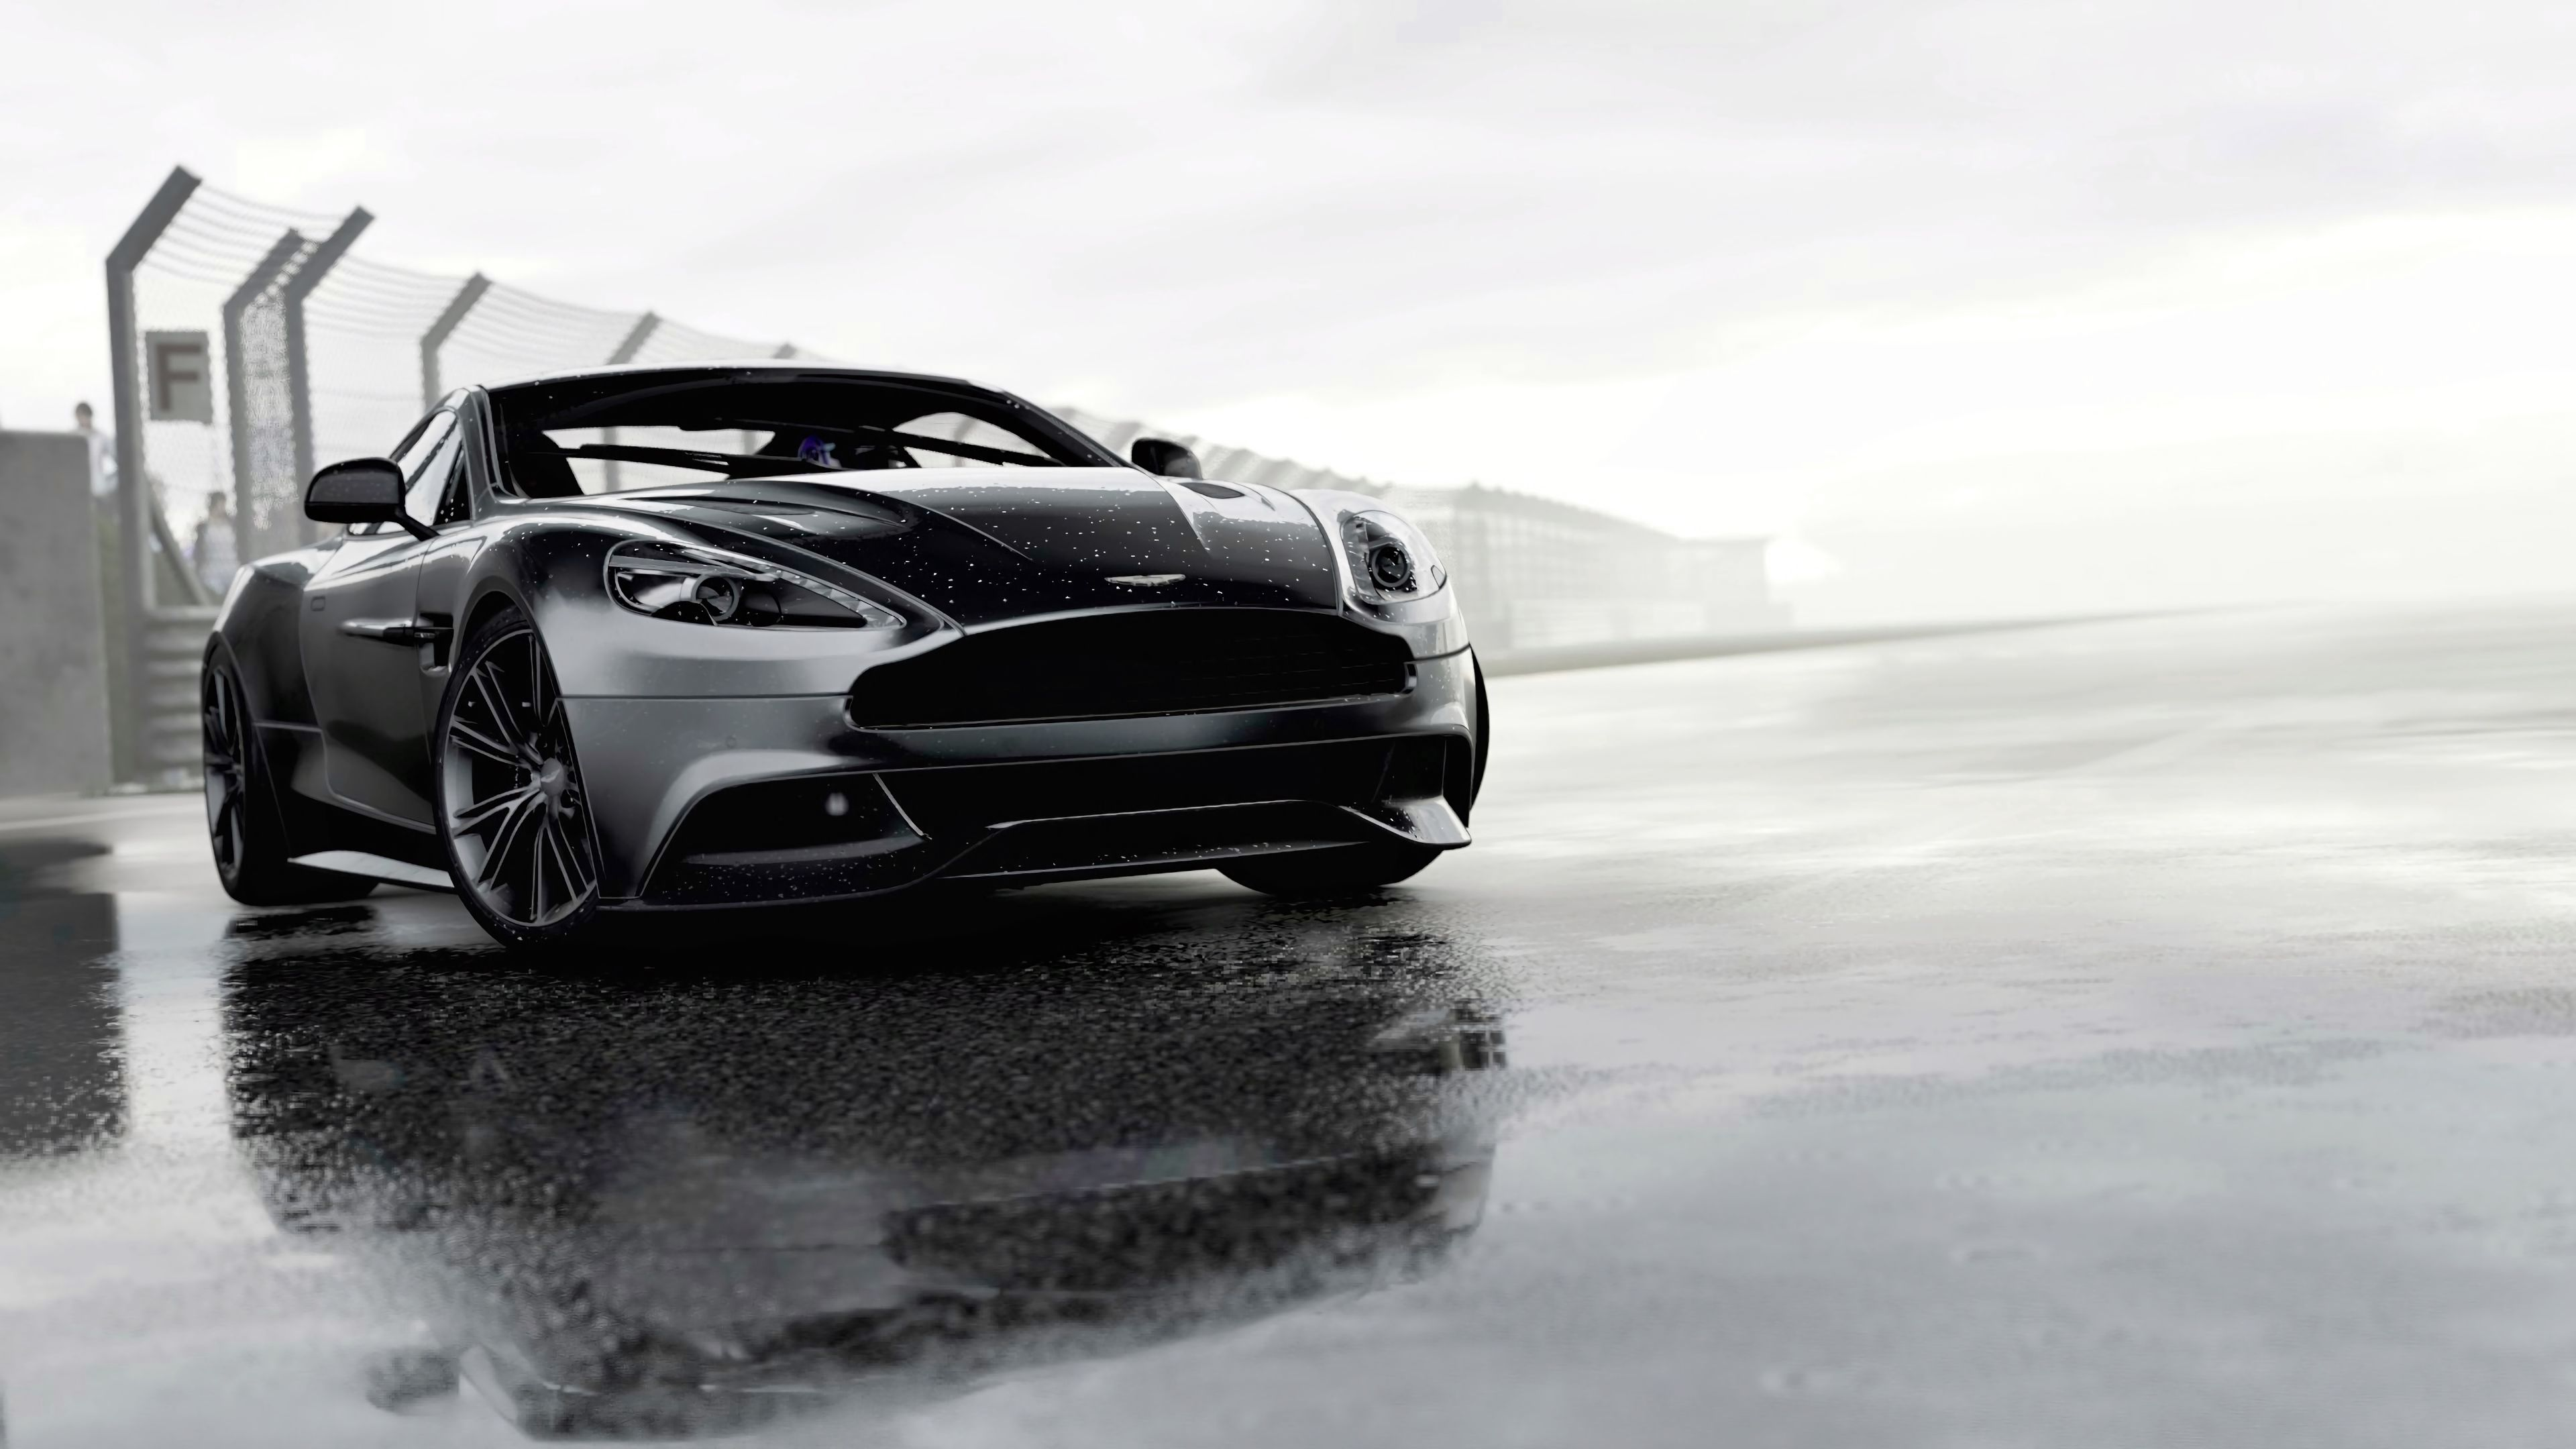 139299 download wallpaper Sports, Races, Aston Martin, Cars, Sports Car screensavers and pictures for free